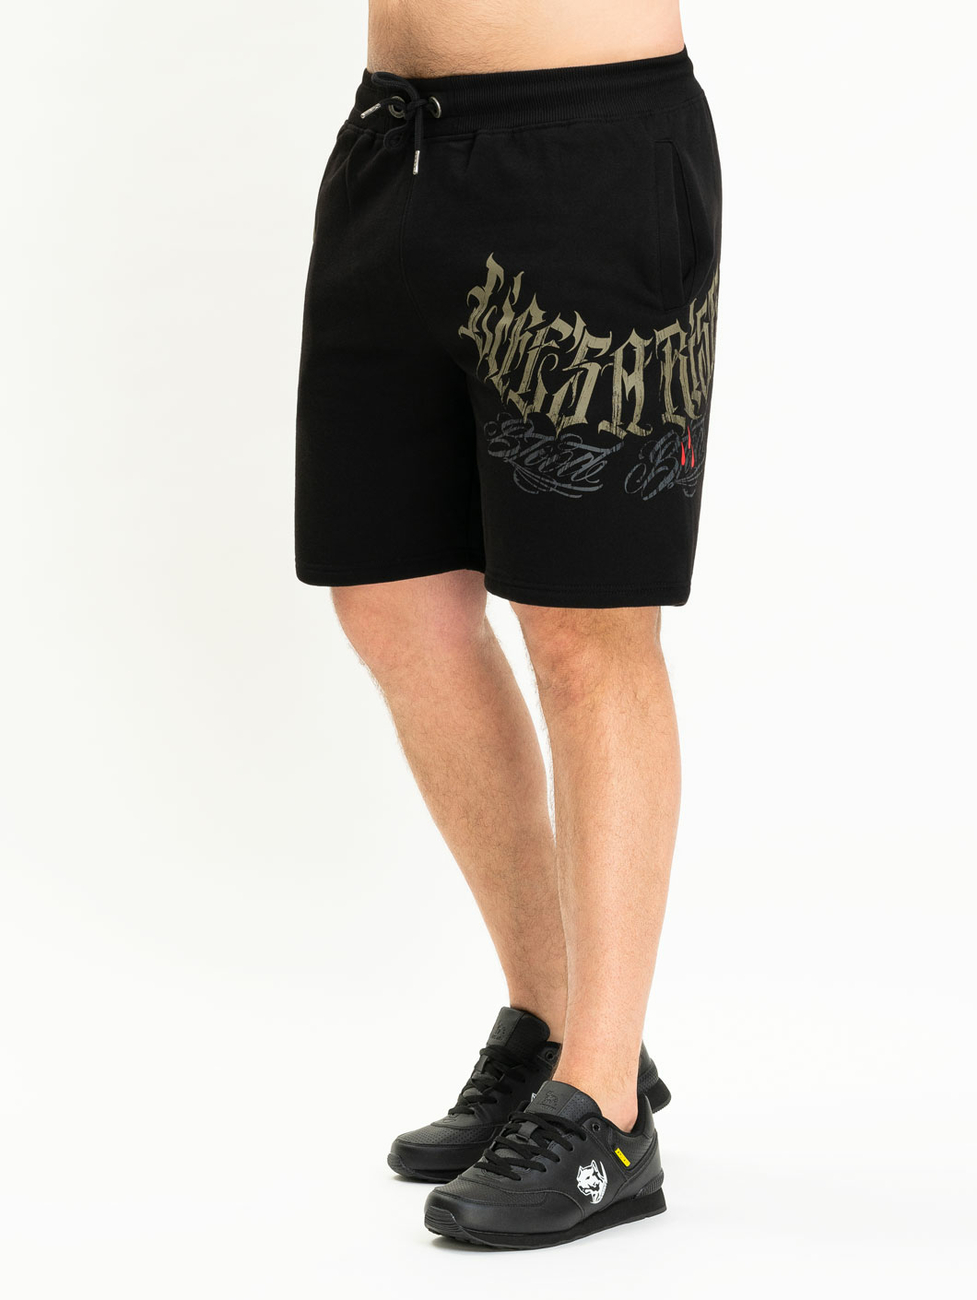 Blood In Blood Out Miembros Sweatshorts 4XL